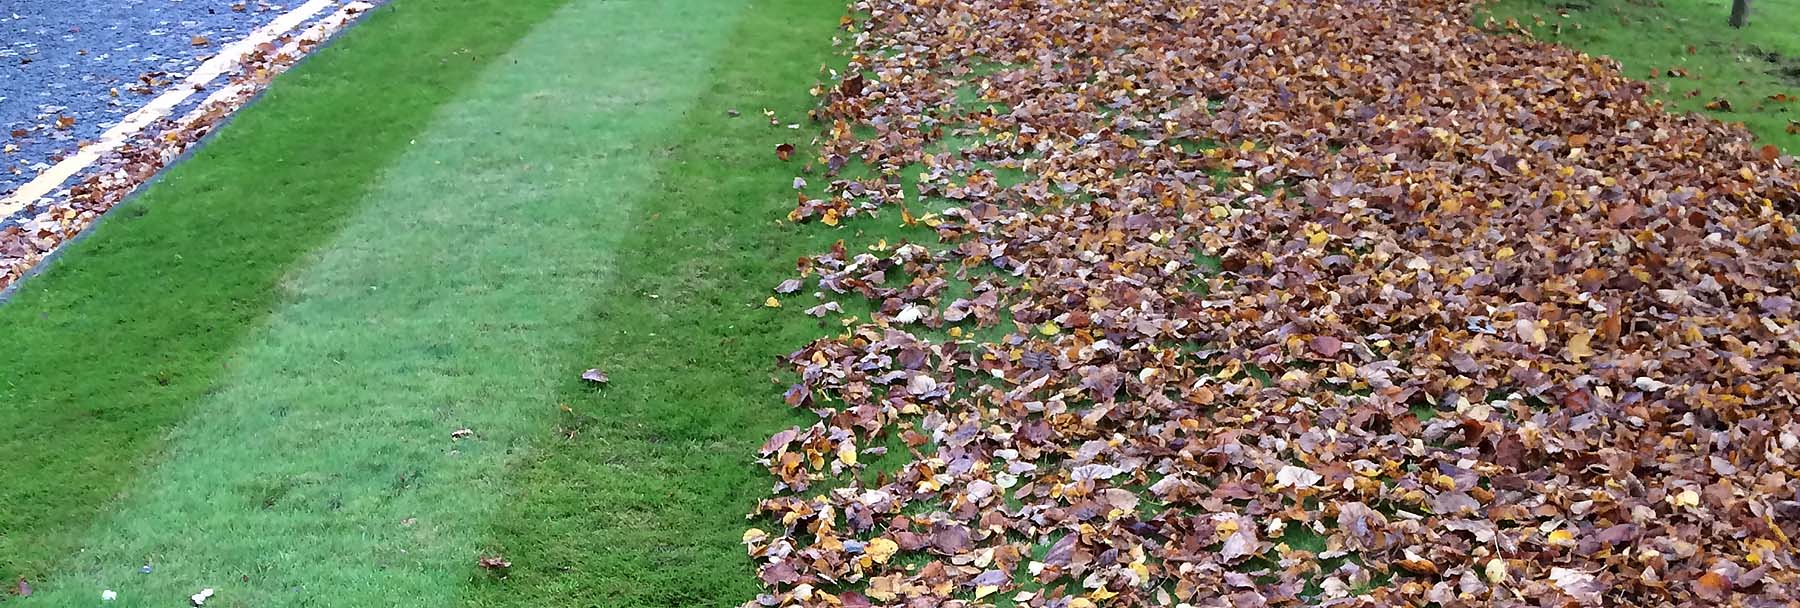 Autumn leaf clearing operation revealing lush green striped lawns as part of the Benholm exterior landscaping services